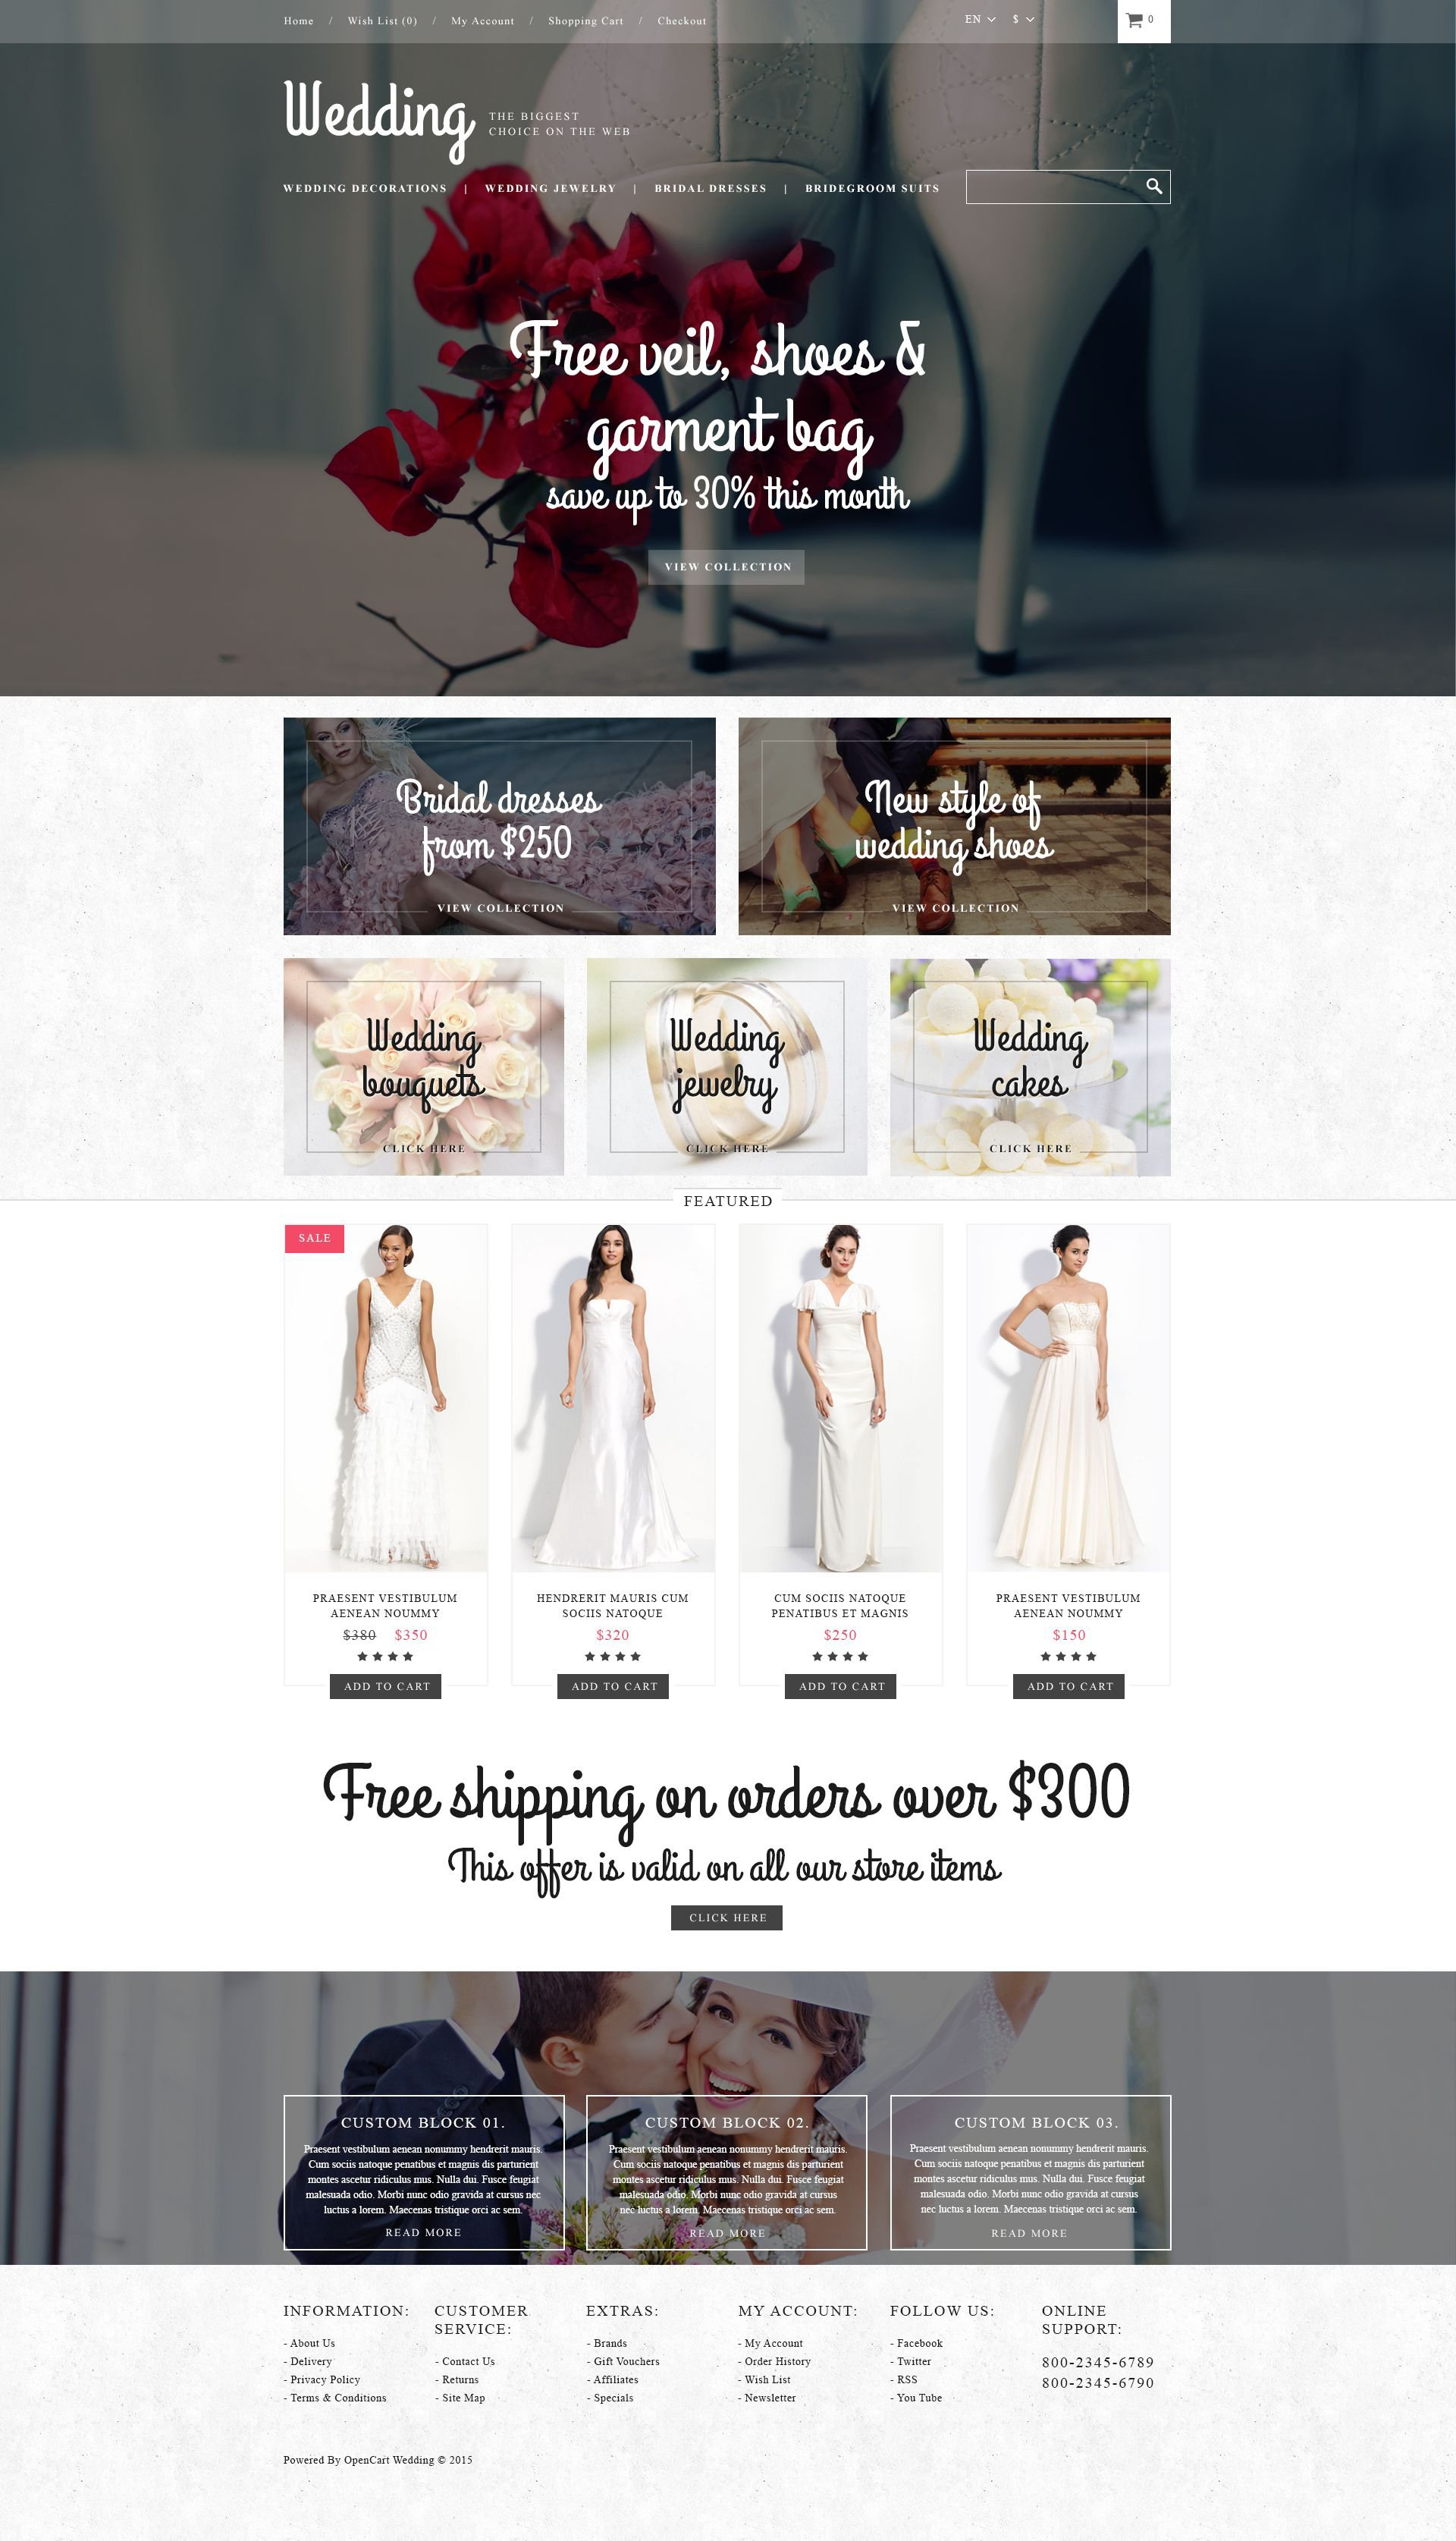 The Wedding Online Store OpenCart Design 52969, one of the best OpenCart templates of its kind (wedding, most popular), also known as wedding online store OpenCart template, reception OpenCart template, bridal OpenCart template, ceremony OpenCart template, gifts OpenCart template, jewel OpenCart template, specials OpenCart template, offers OpenCart template, rings OpenCart template, flowers OpenCart template, bouquet designers OpenCart template, candles OpenCart template, glasses OpenCart template, decoration OpenCart template, style OpenCart template, accessories OpenCart template, crown OpenCart template, tiara OpenCart template, gown OpenCart template, veil OpenCart template, dress OpenCart template, collection OpenCart template, couple OpenCart template, fiancee OpenCart template, marriage OpenCart template, bridegroom OpenCart template, husband OpenCart template, wife OpenCart template, match and related with wedding online store, reception, bridal, ceremony, gifts, jewel, specials, offers, rings, flowers, bouquet designers, candles, glasses, decoration, style, accessories, crown, tiara, gown, veil, dress, collection, couple, fiancee, marriage, bridegroom, husband, wife, match, etc.